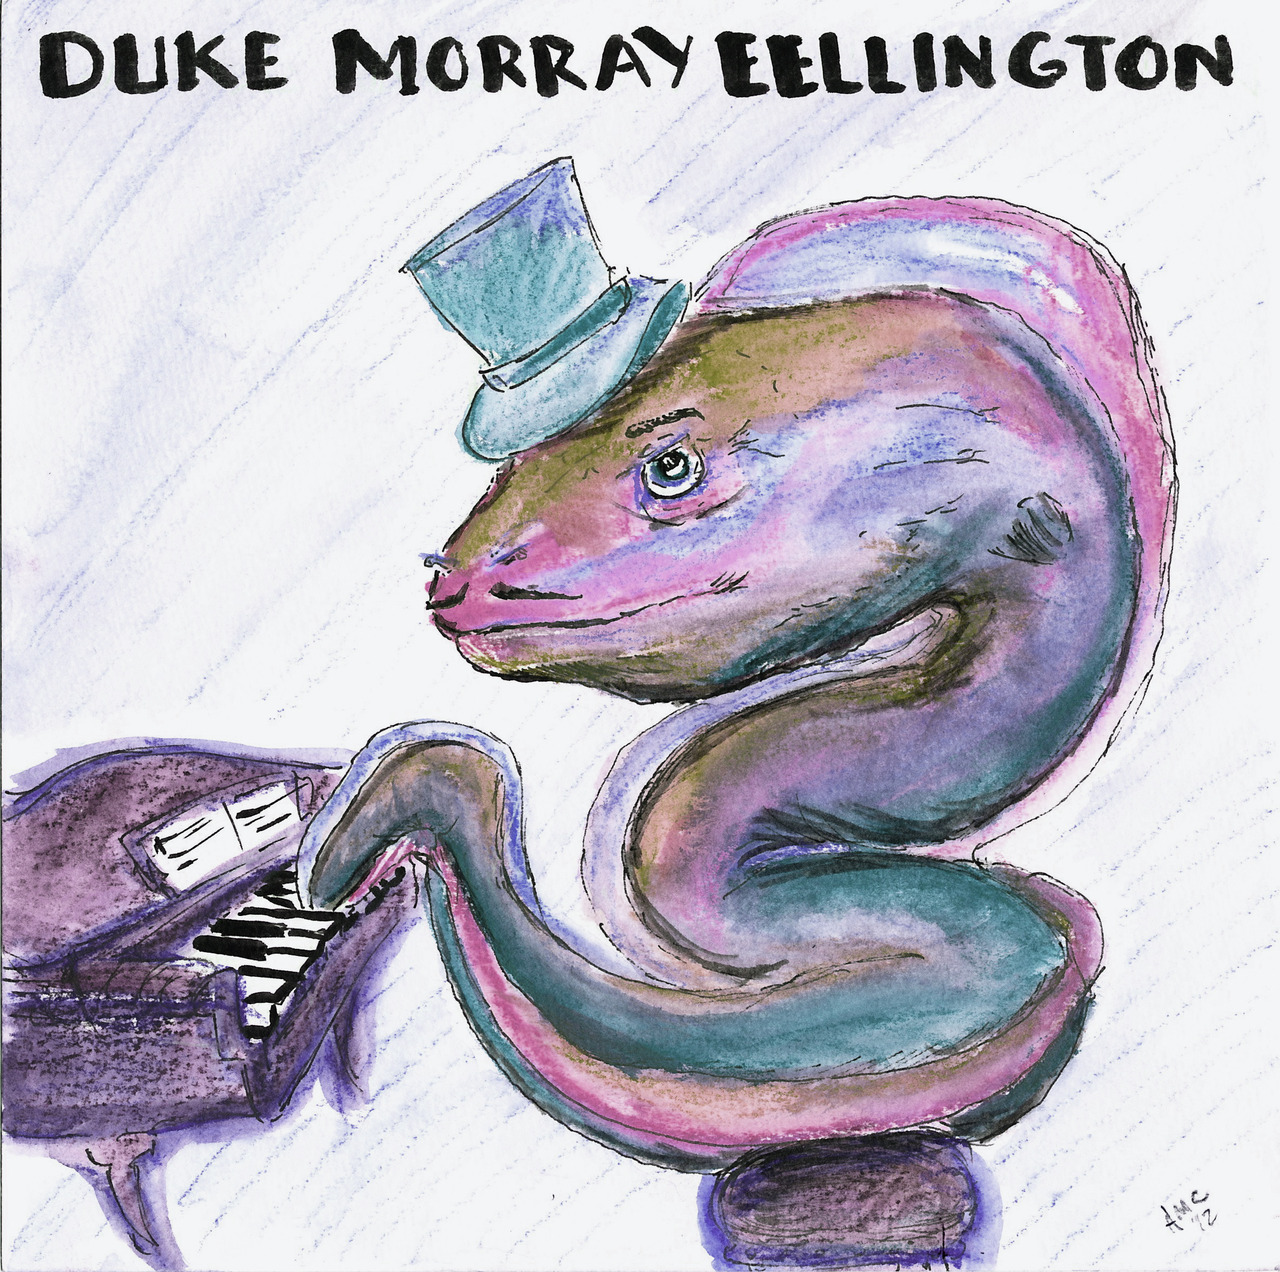 Duke Morray Eellington (Duke Ellington - In a Sentimental Mood)